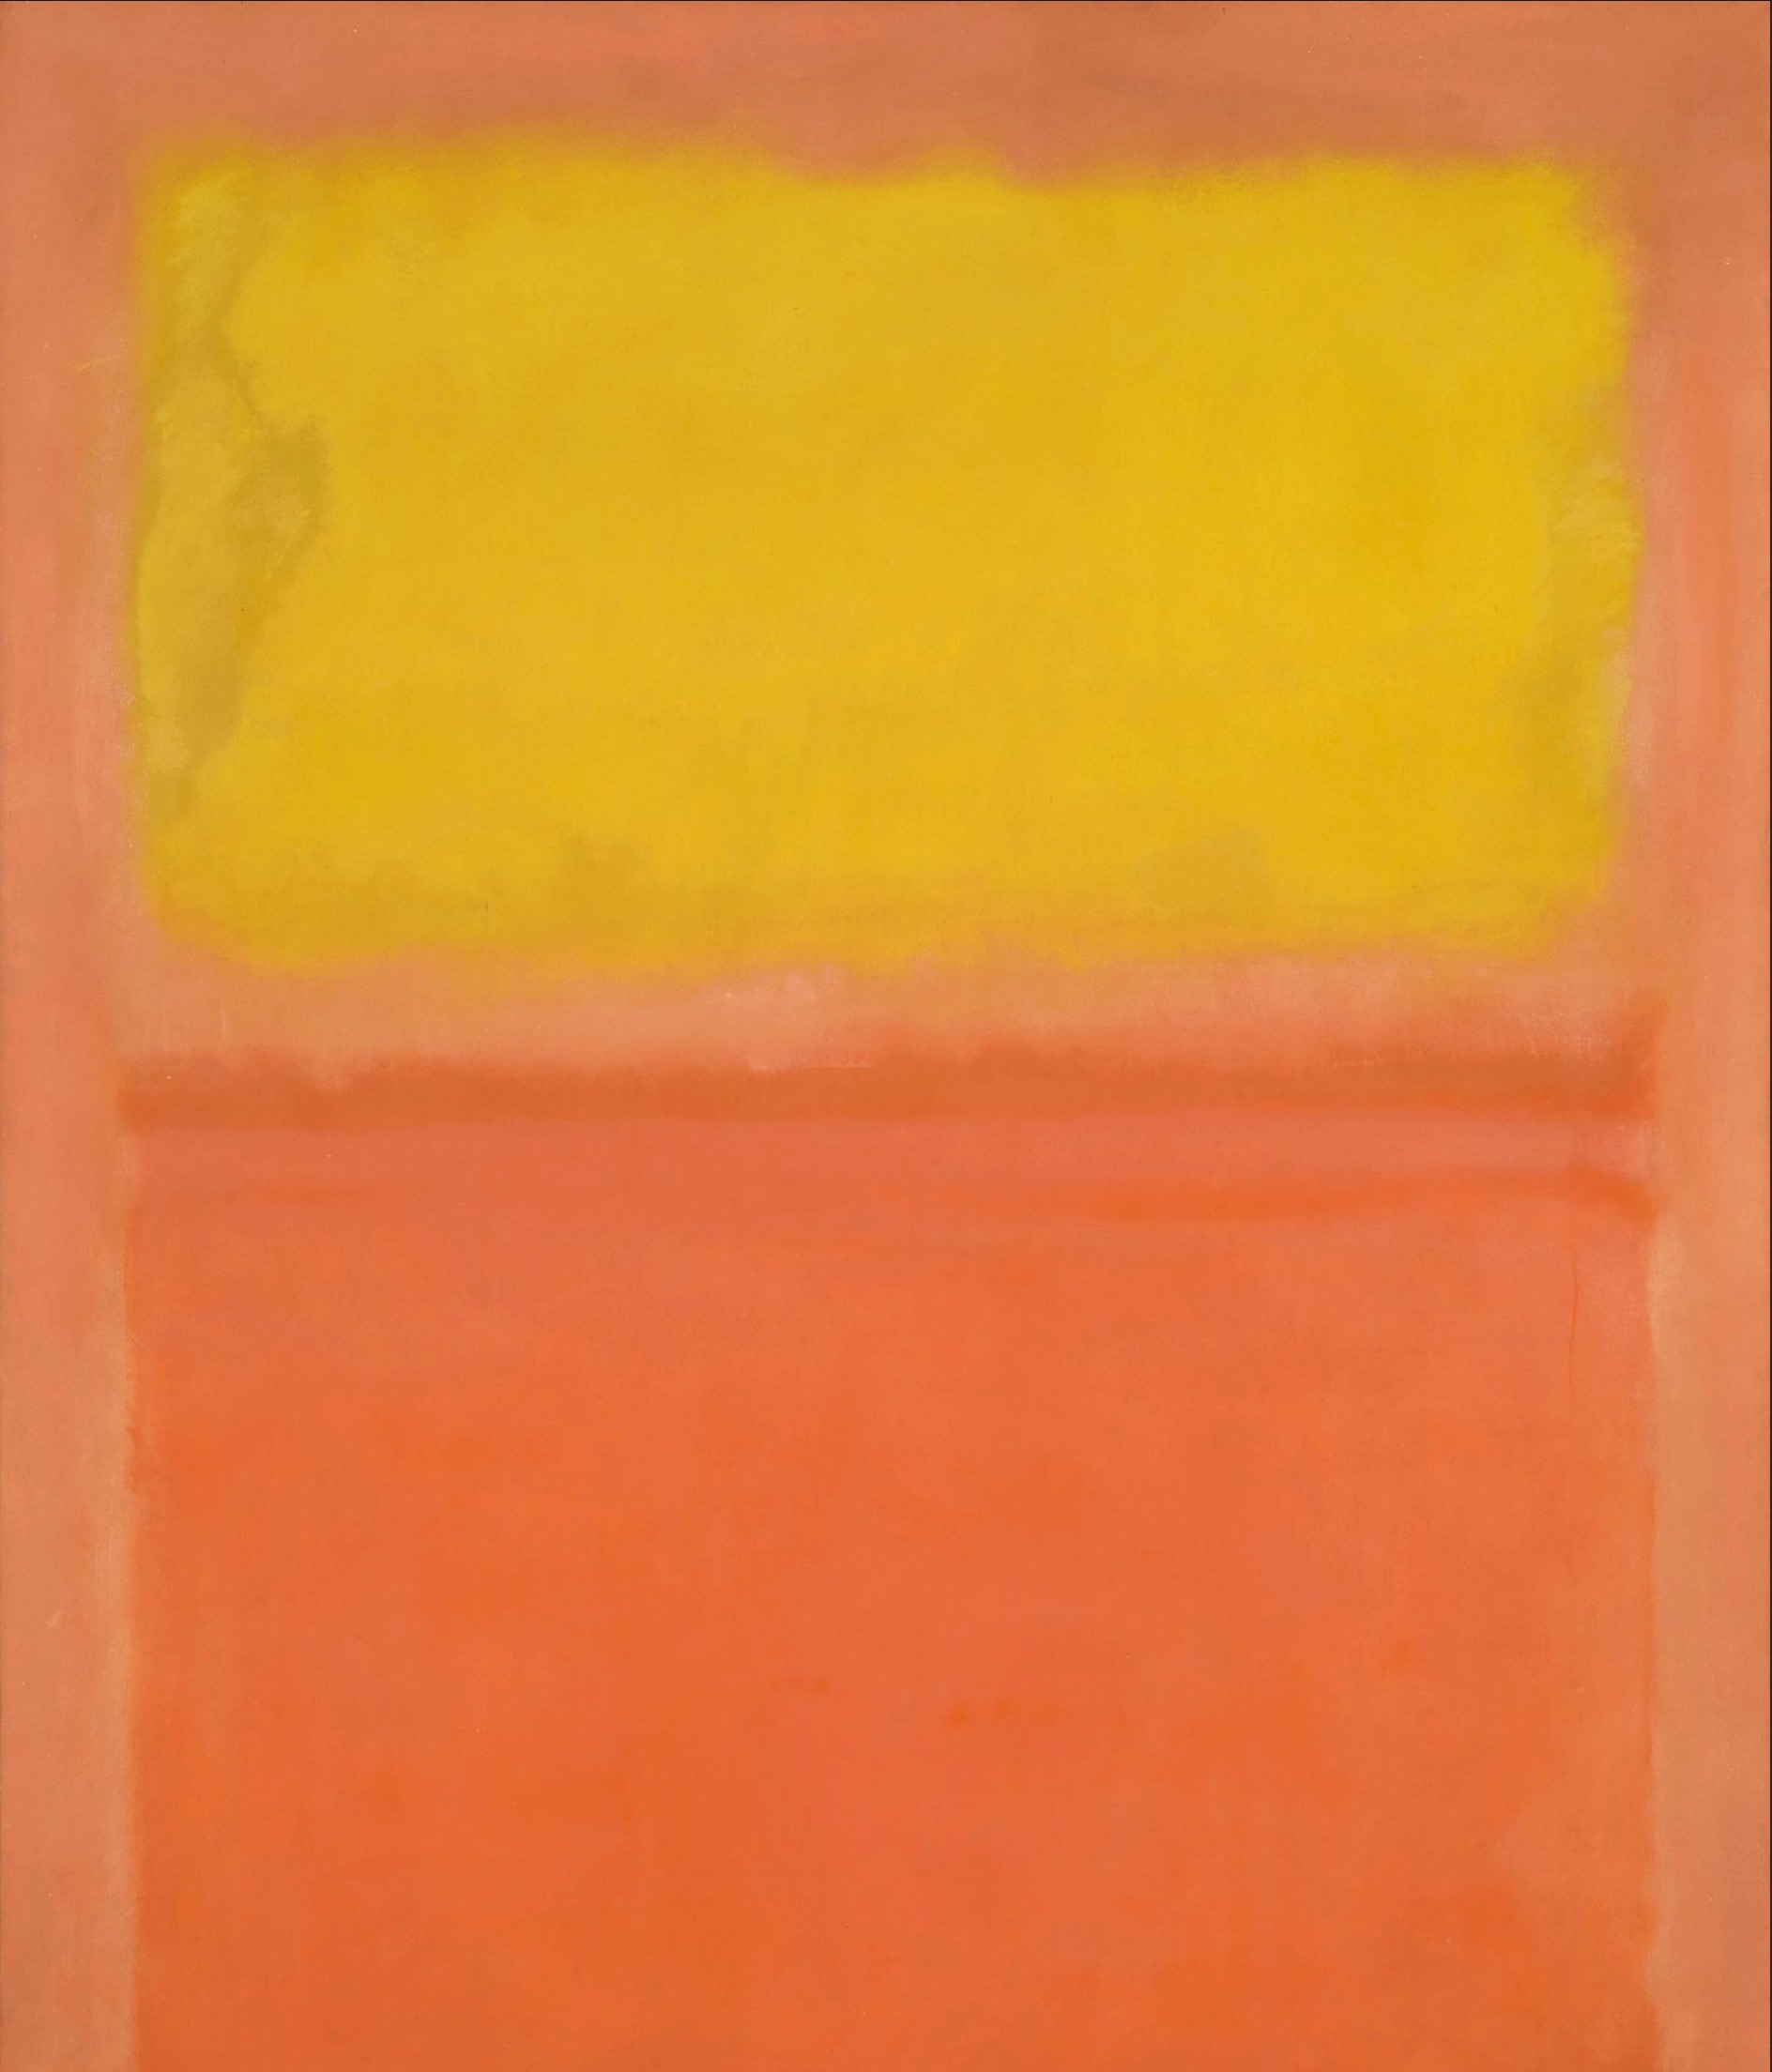 Mark Rothko, Orange and yellow, 1956  Huile sur toile • 231,1 × 180,3 cm • Buffalo, Albright-Knox Art Gallery • © 1998 Kate Rothko Prizel & Christopher Rothko / Adagp, Paris / Albright-Knox Art Gallery